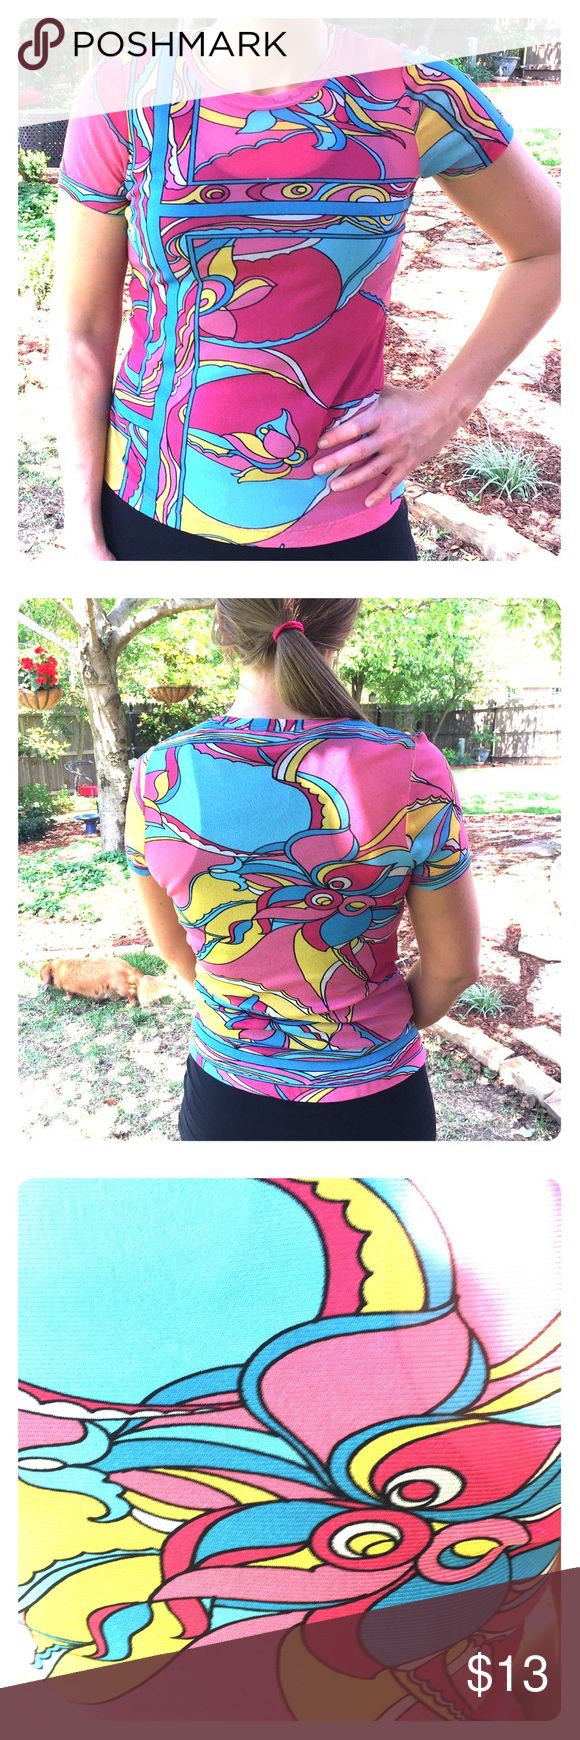 Karen Kane t-shirt Vibrant colors design this stretchy polyester fabric t-shirt. It looks like a size small on the hangar, but this cute and comfy (fitted) xl top stretches on the body. Karen Kane Tops Tees - Short Sleeve